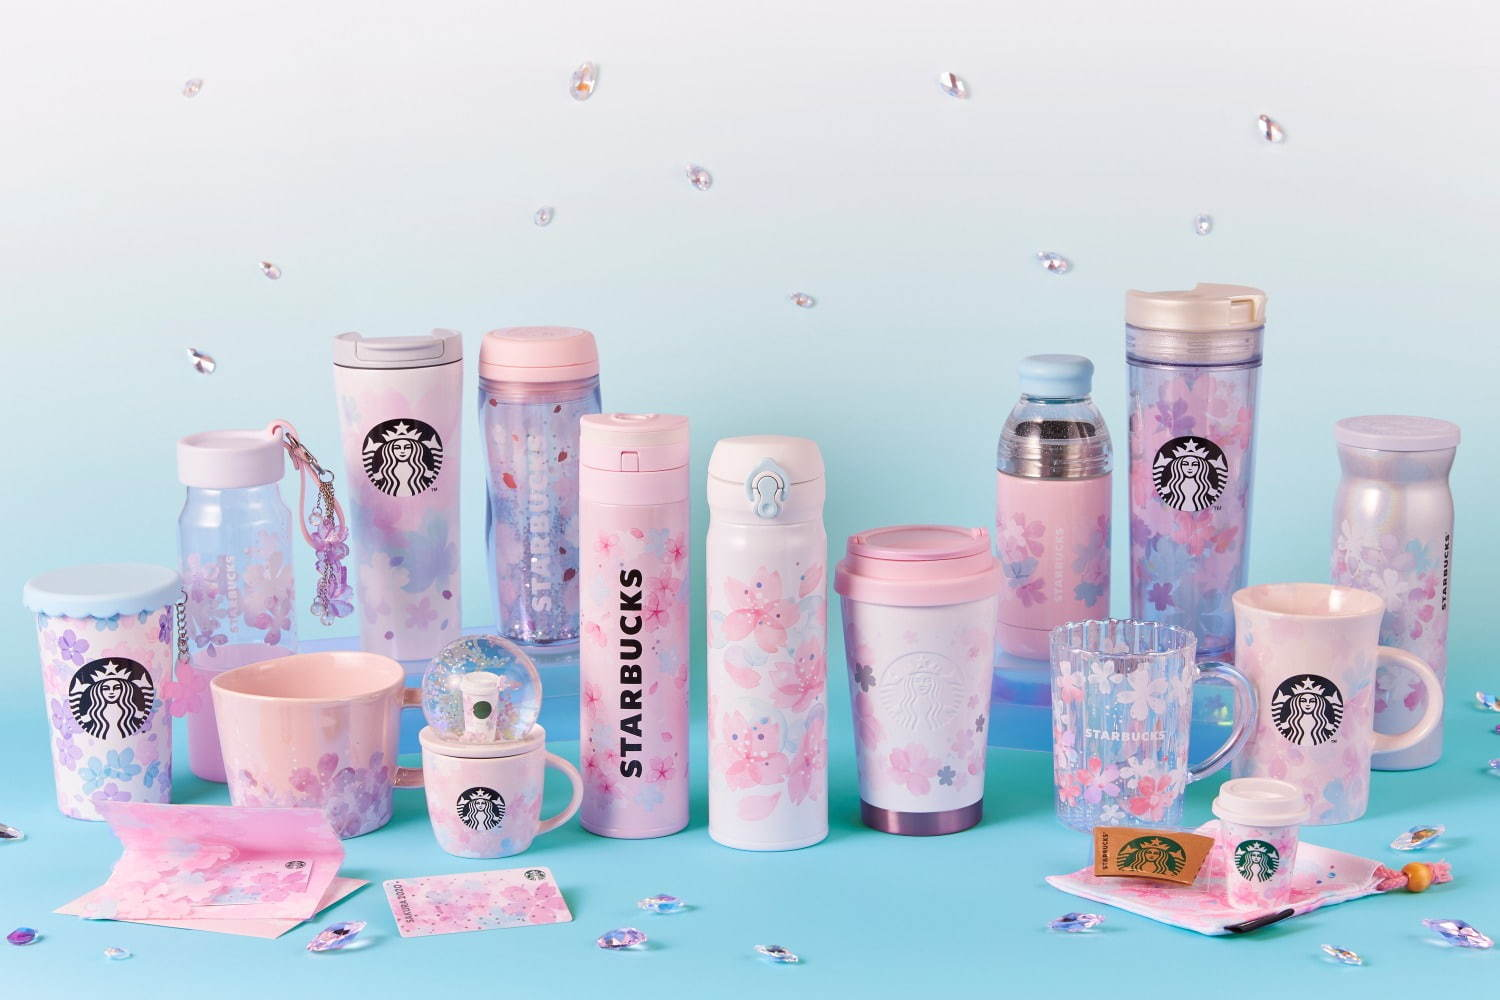 Starbucks Japan Sakura Tumblers and Mugs 2020